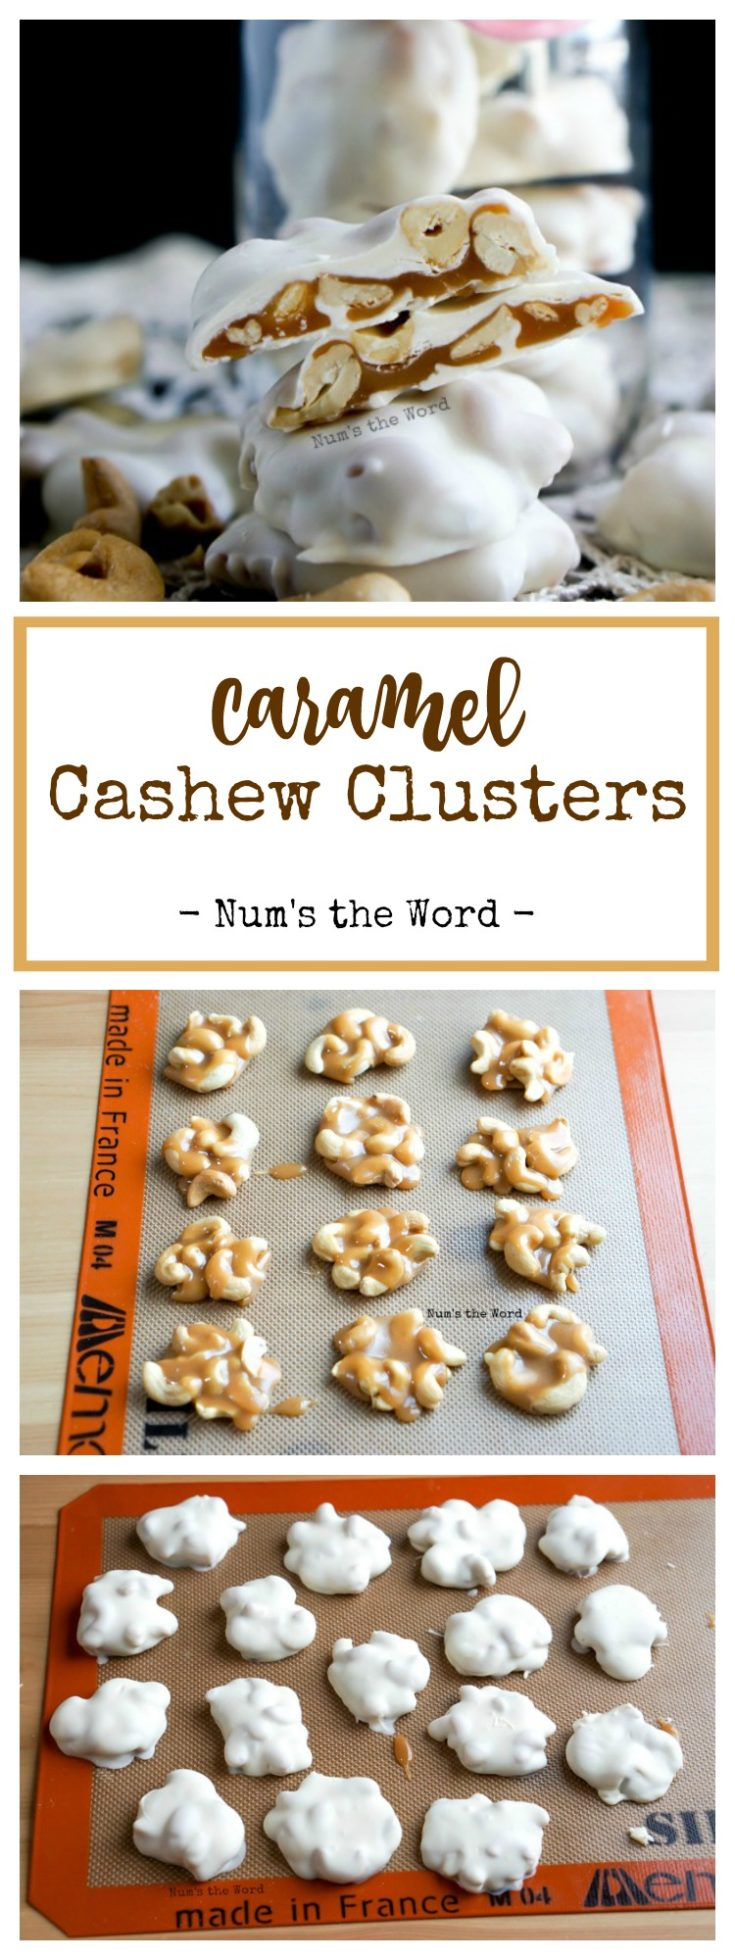 Caramel Cashew Clusters make the perfect gift for any cashew lover! Chewy homemade caramel, salted cashews and white chocolate create a gourmet treat that you can make at home!